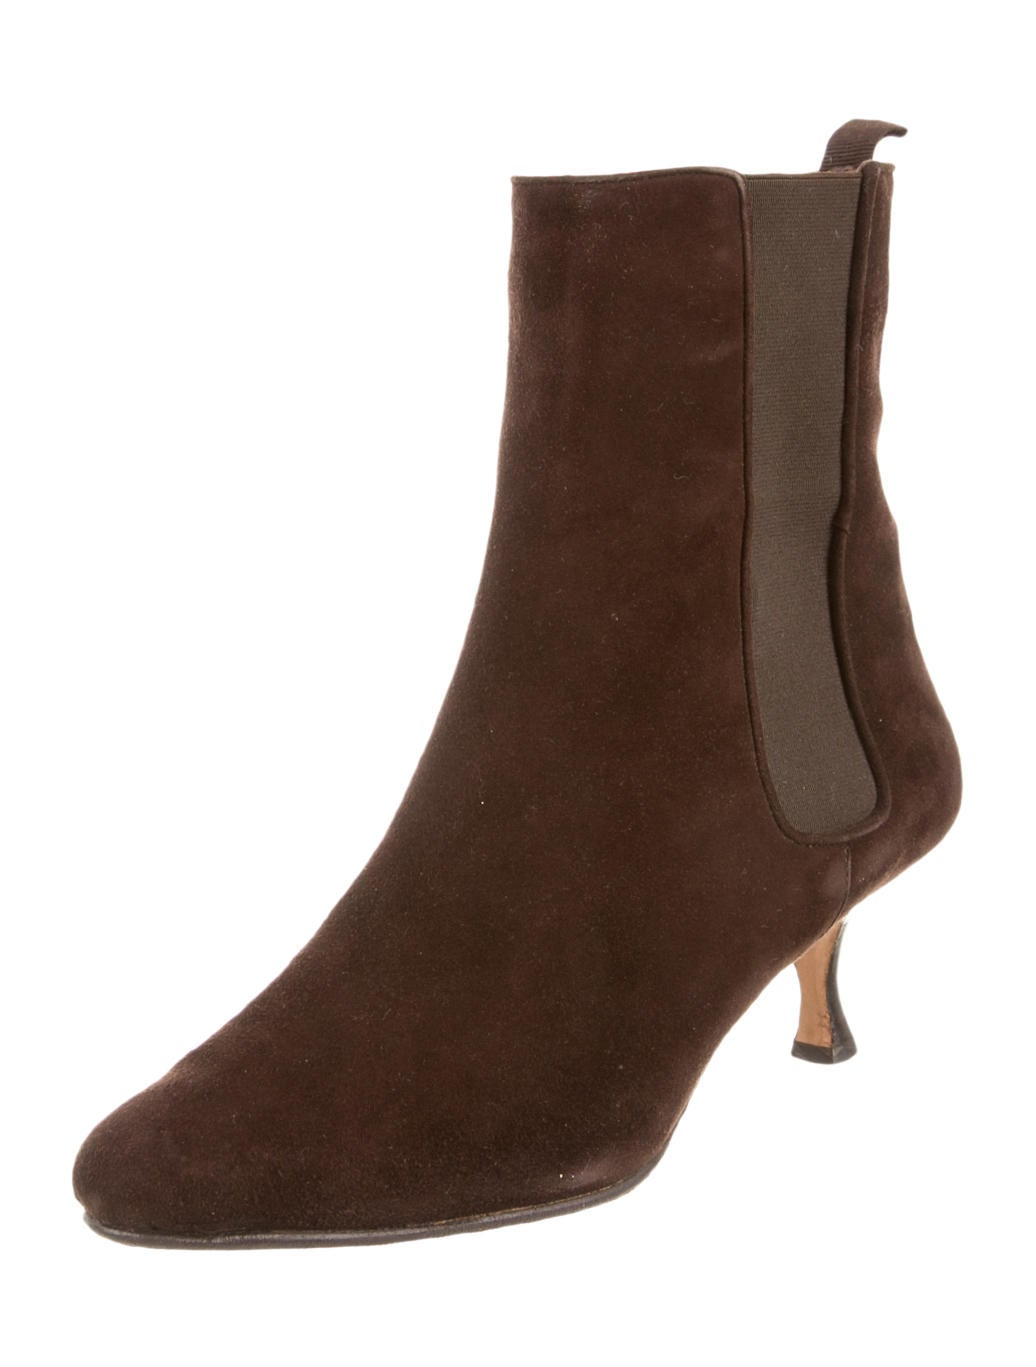 Manolo Blahnik Ankle Boots - Shoes - MOO36373   The RealReal